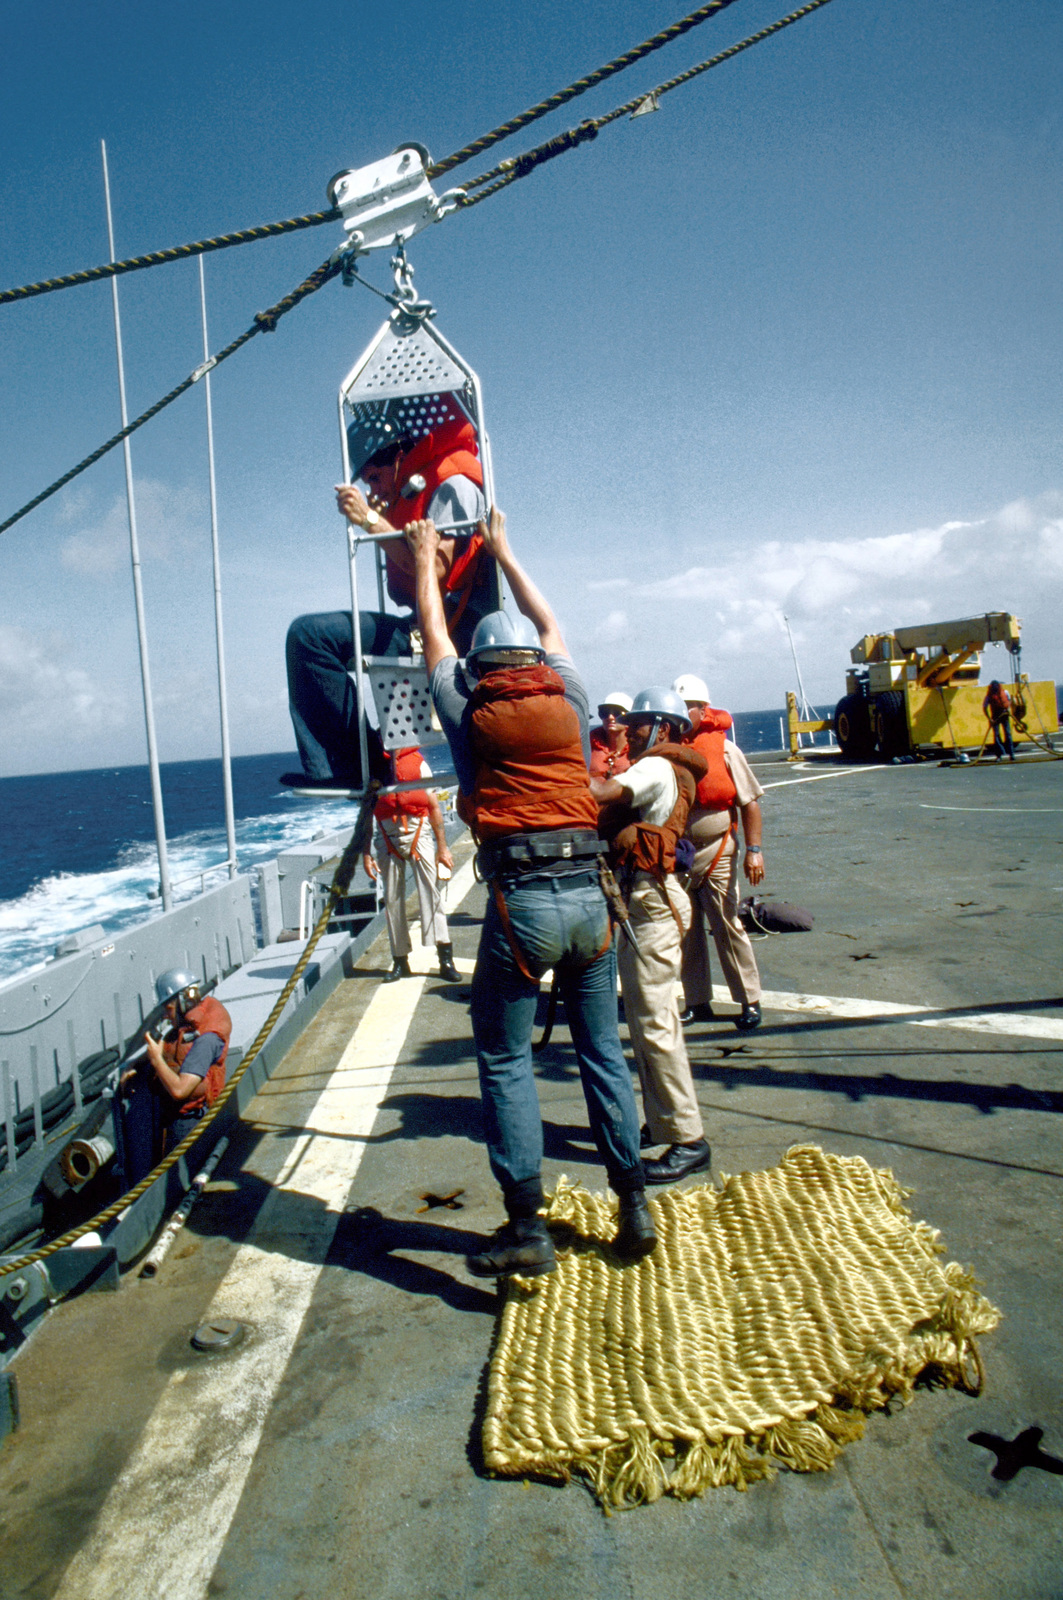 Crewmen aboard the destroyer USS ARTHUR W. RADFORD (DD-968) pull a boatswain's chair to the deck during a personnel transfer by highline from the guided missile destroyer USS KING (DDG-41). The ships are taking part in exercise Unitas XXI